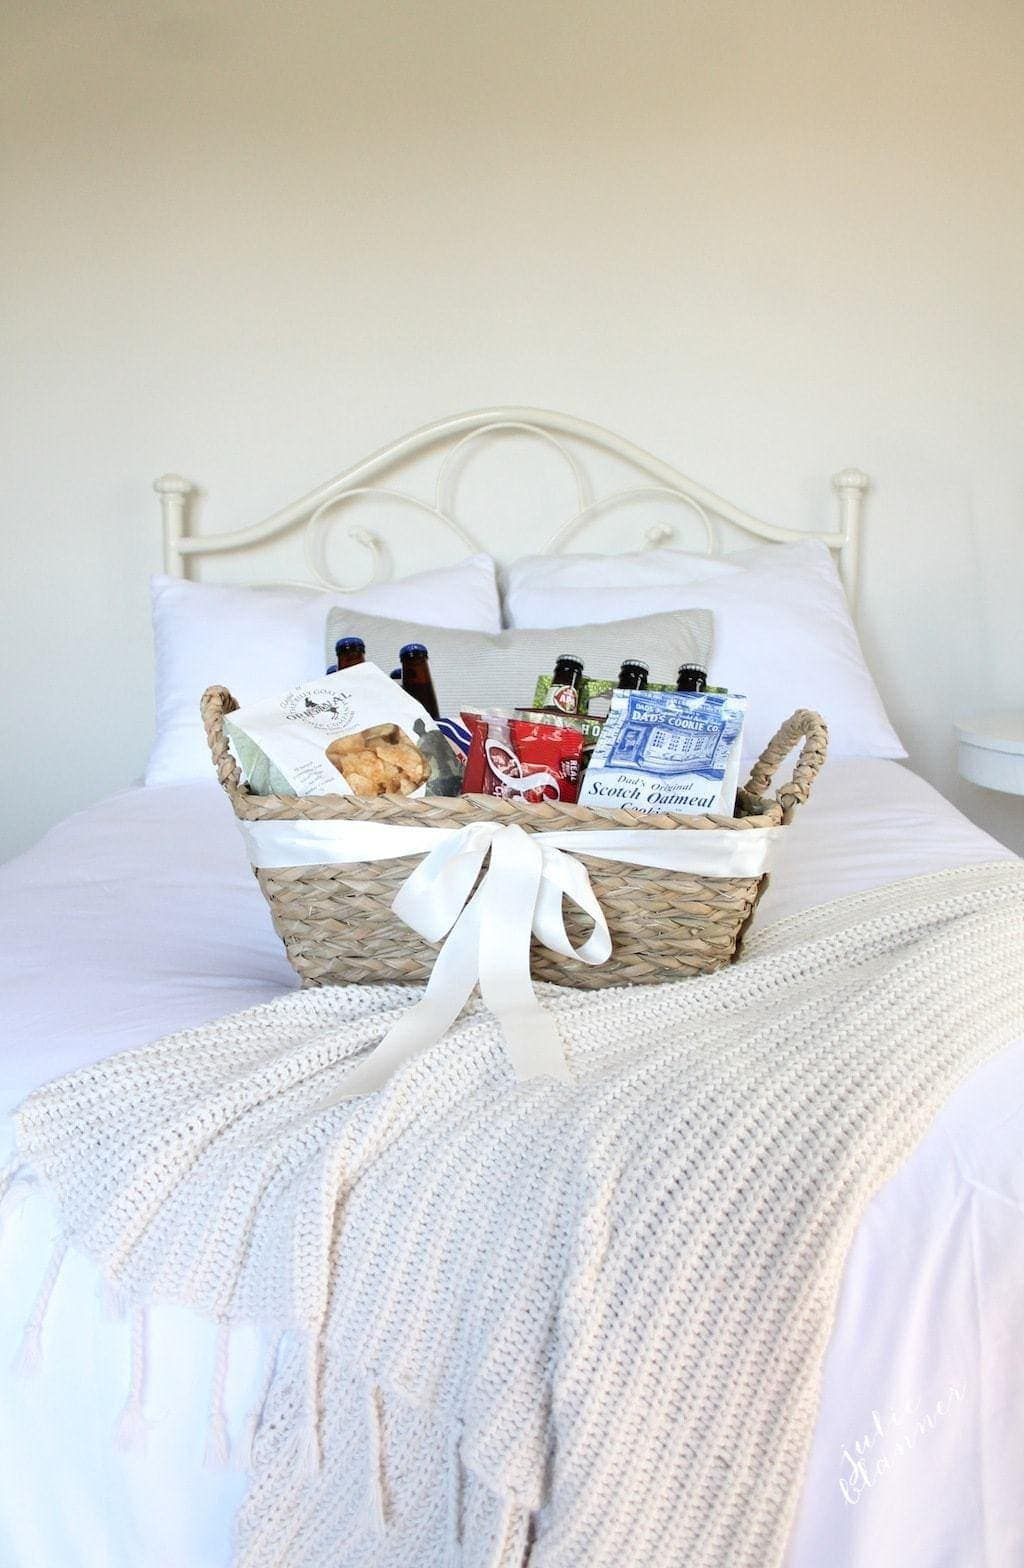 Welcome guests with a taste of your hometown in a beautiful gift basket